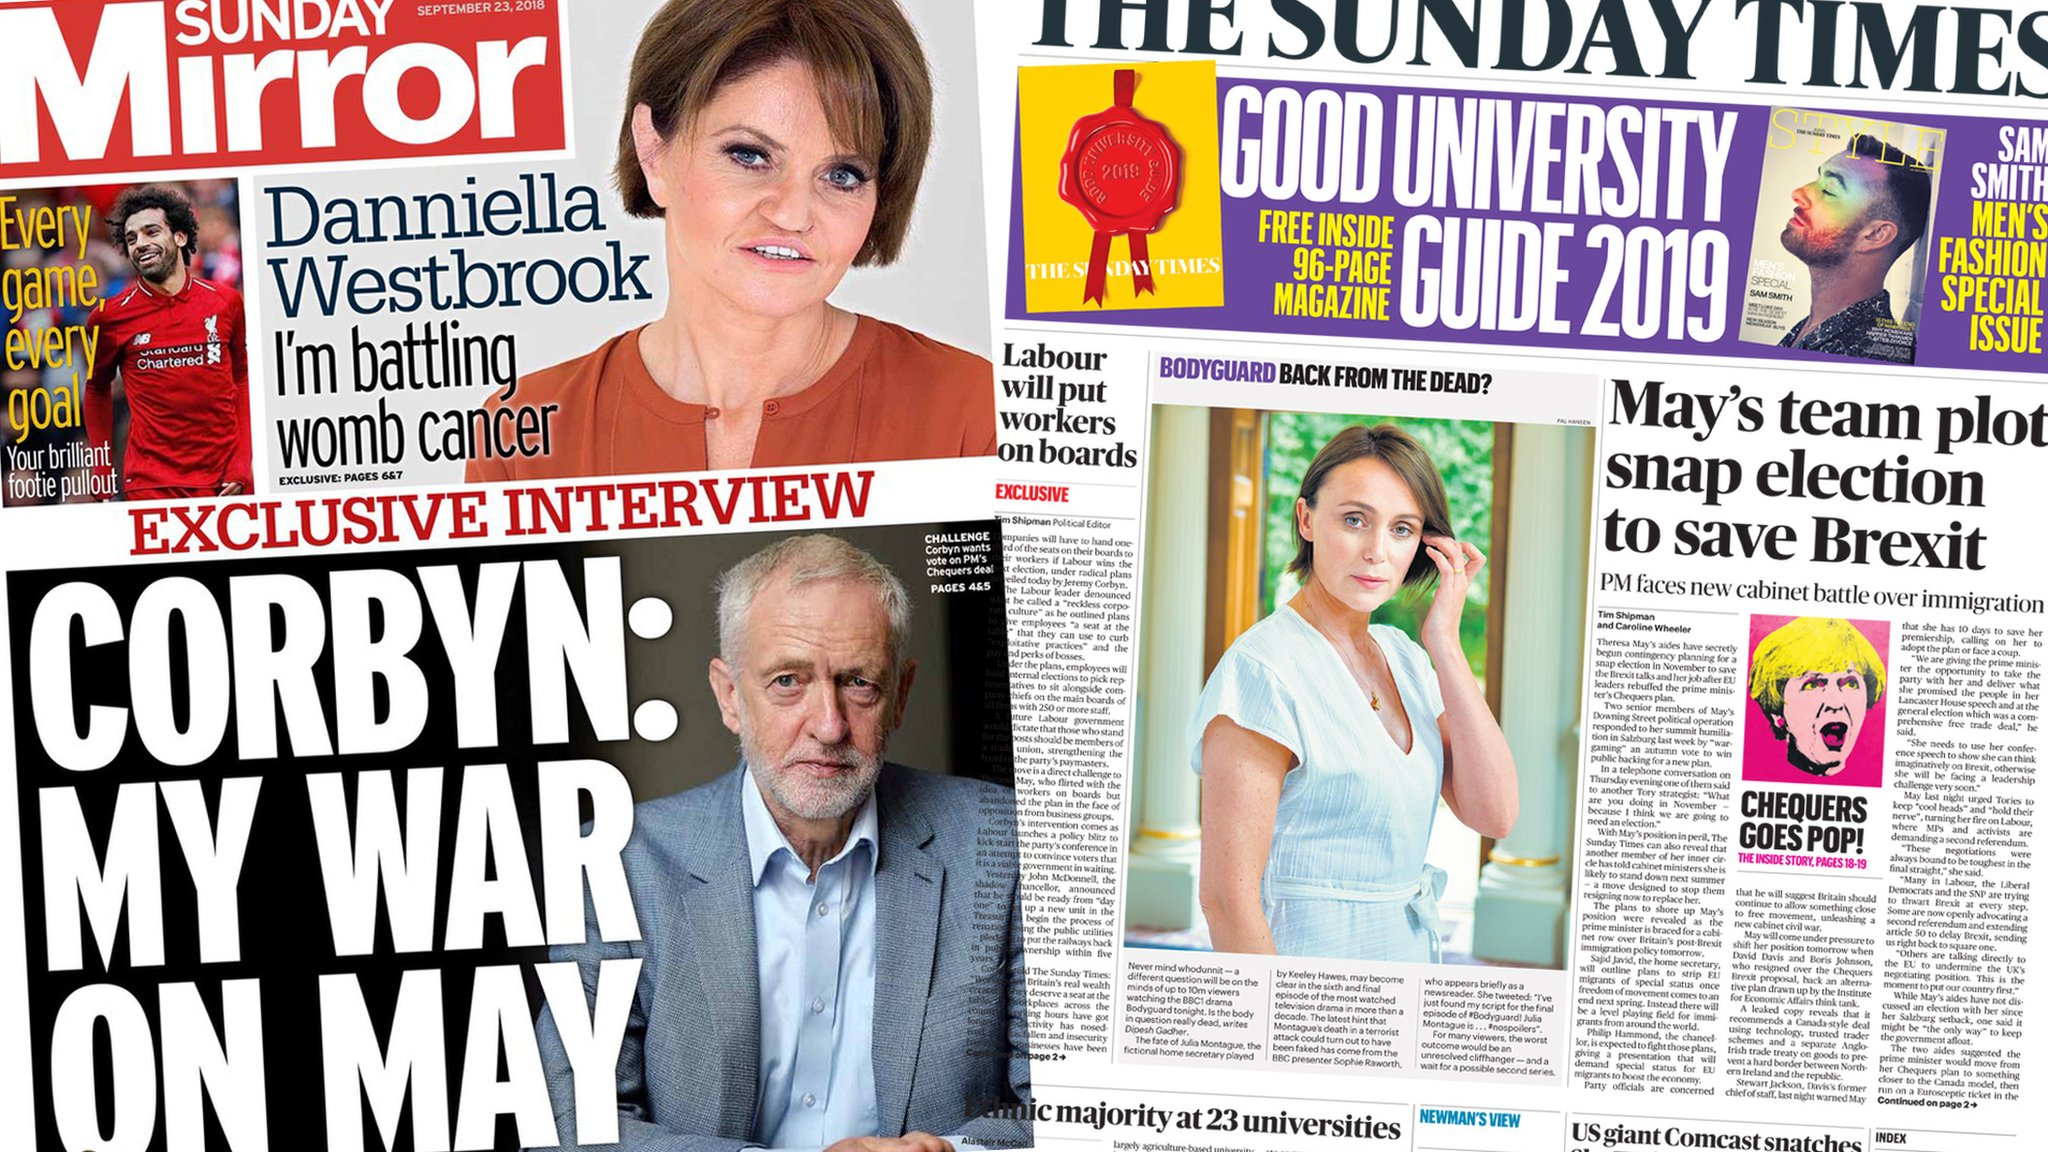 The Papers: 'Snap election plot' and Labour on new EU vote